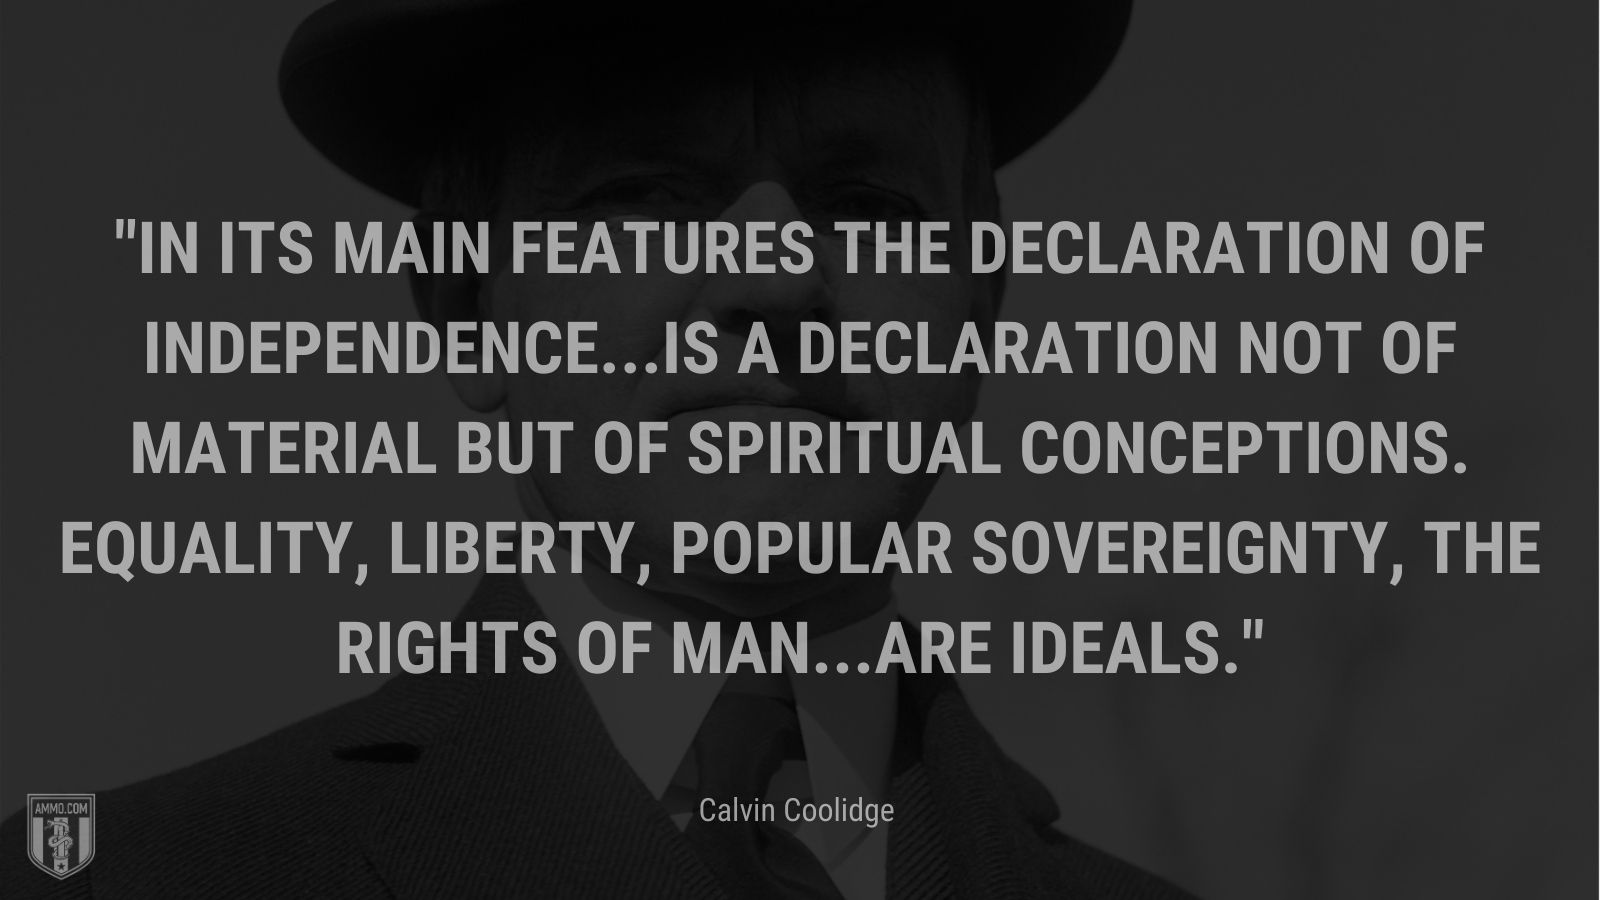 """""""In its main features the Declaration of Independence...is a declaration not of material but of spiritual conceptions. Equality, liberty, popular sovereignty, the rights of man...are ideals."""" - Calvin Coolidge"""